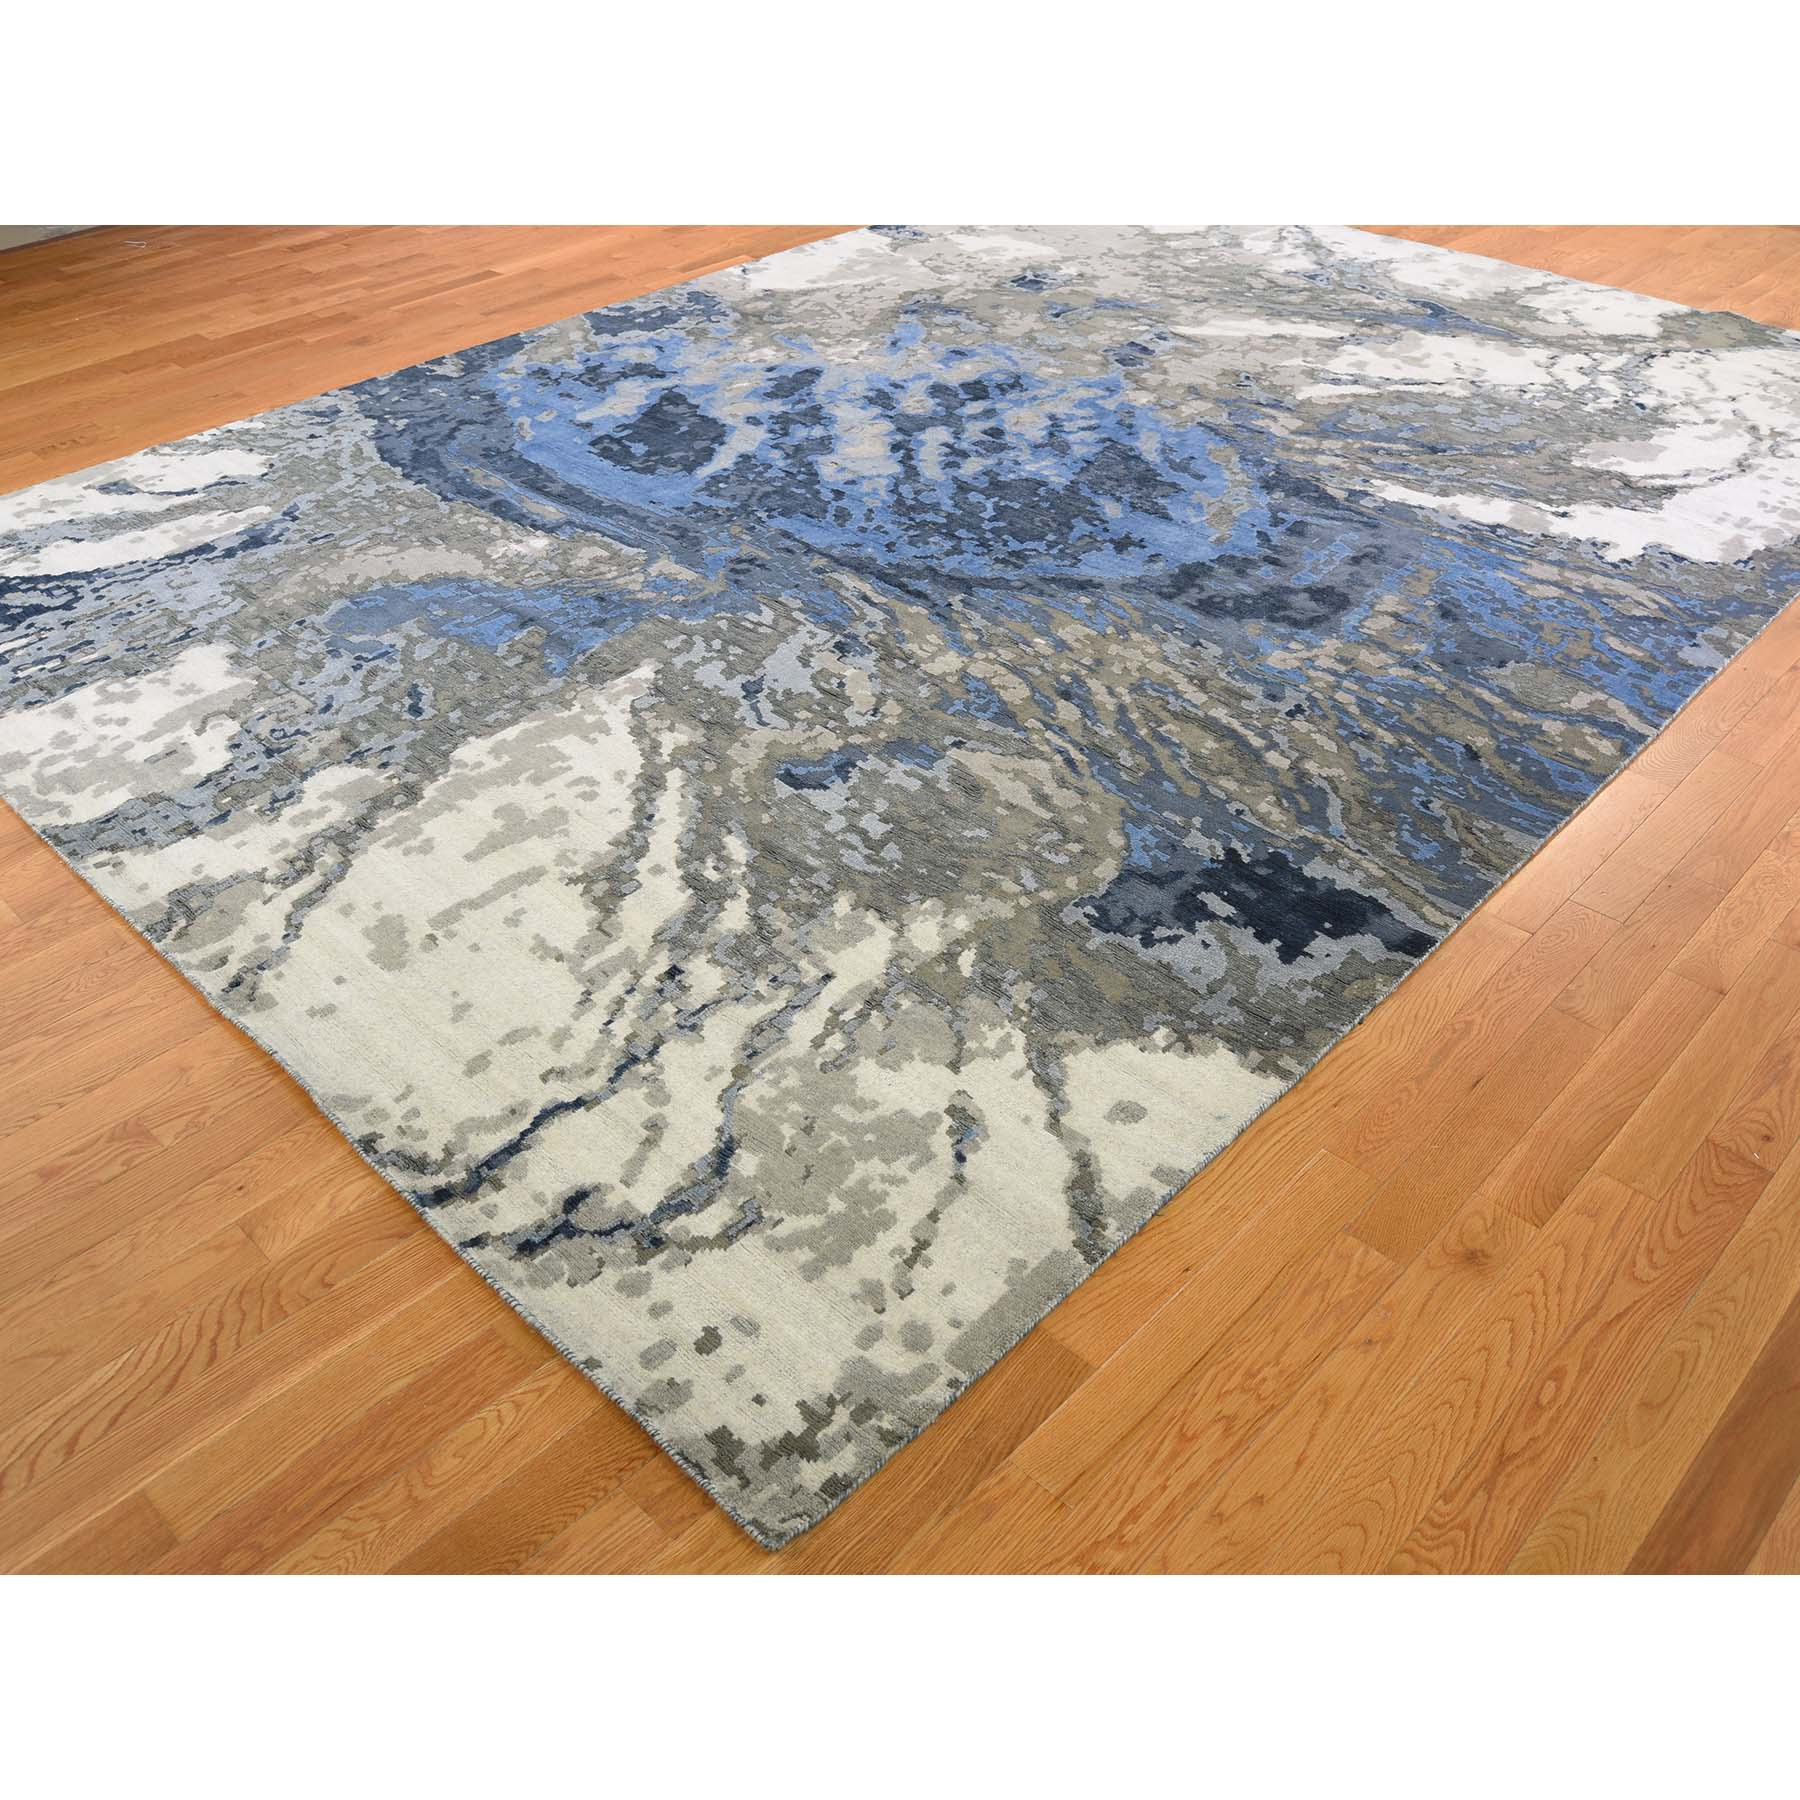 """10'x13'10"""" Abstract Design Wool and Silk Hi-low Pile Hand Knotted Oriental Rug"""